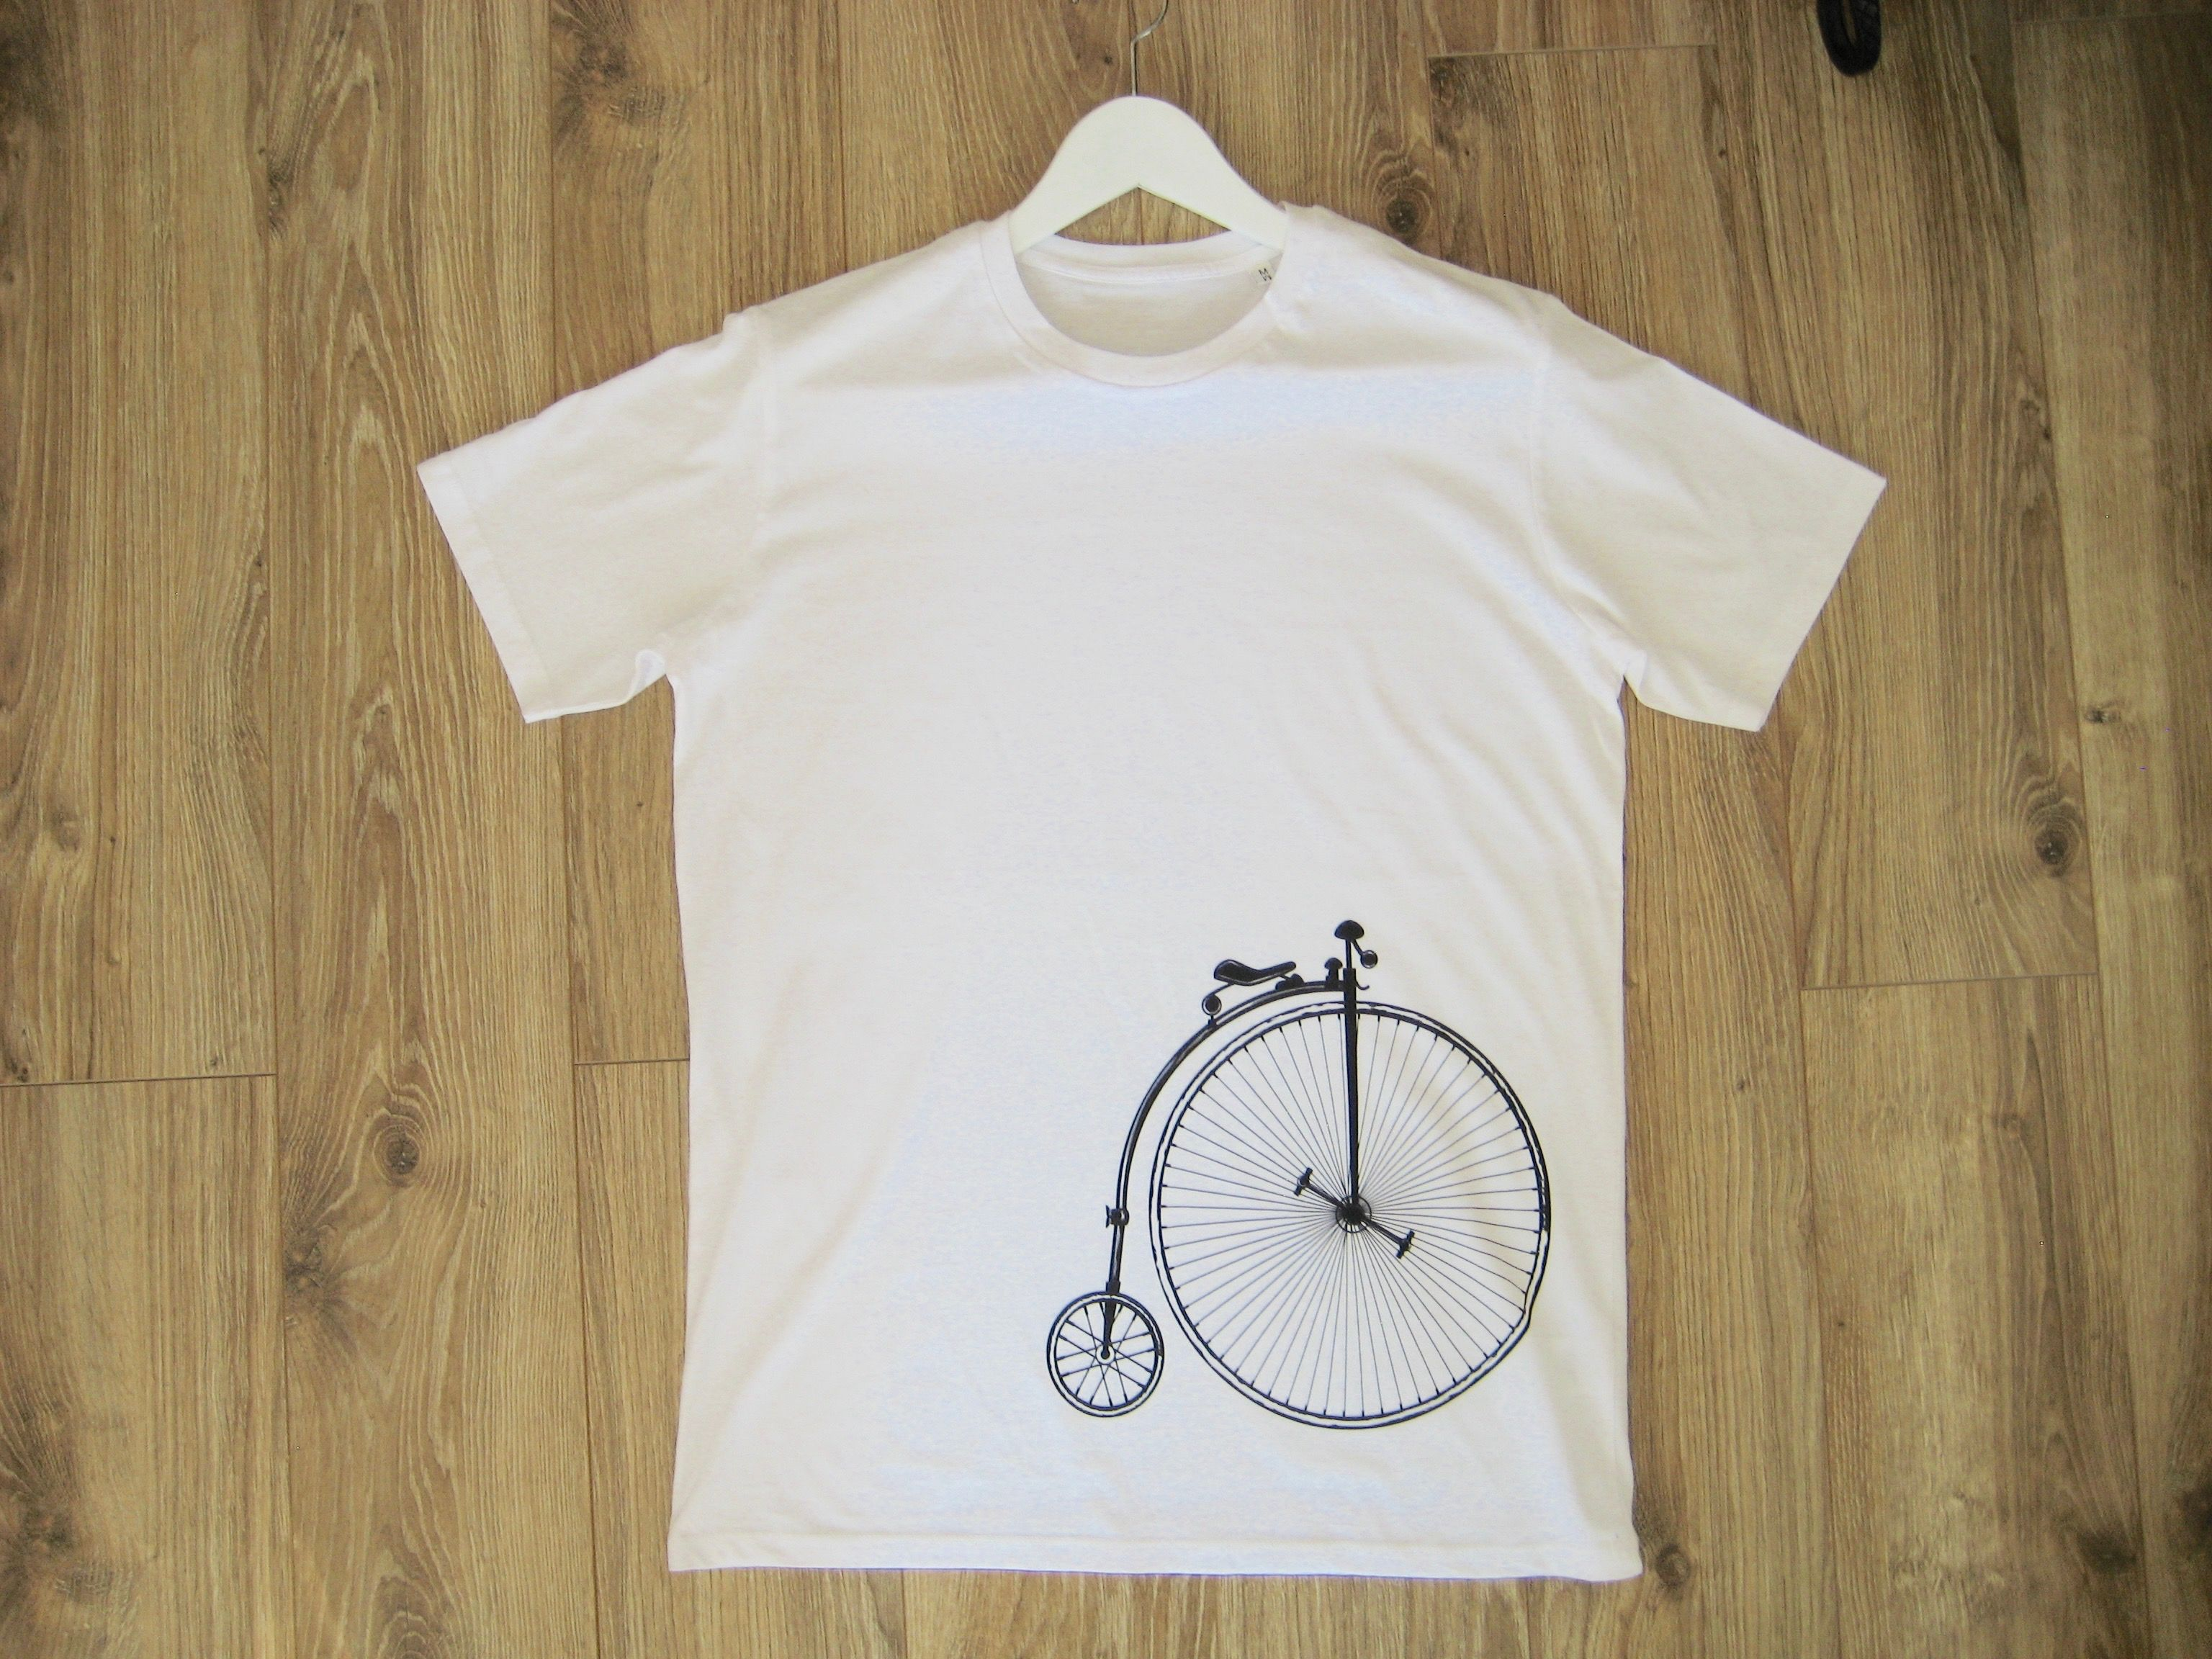 Premium quality t-shirt - 100% organic cotton. Print is created based on the Victorian bicycle. Worldwide delivery.  Price: 25$